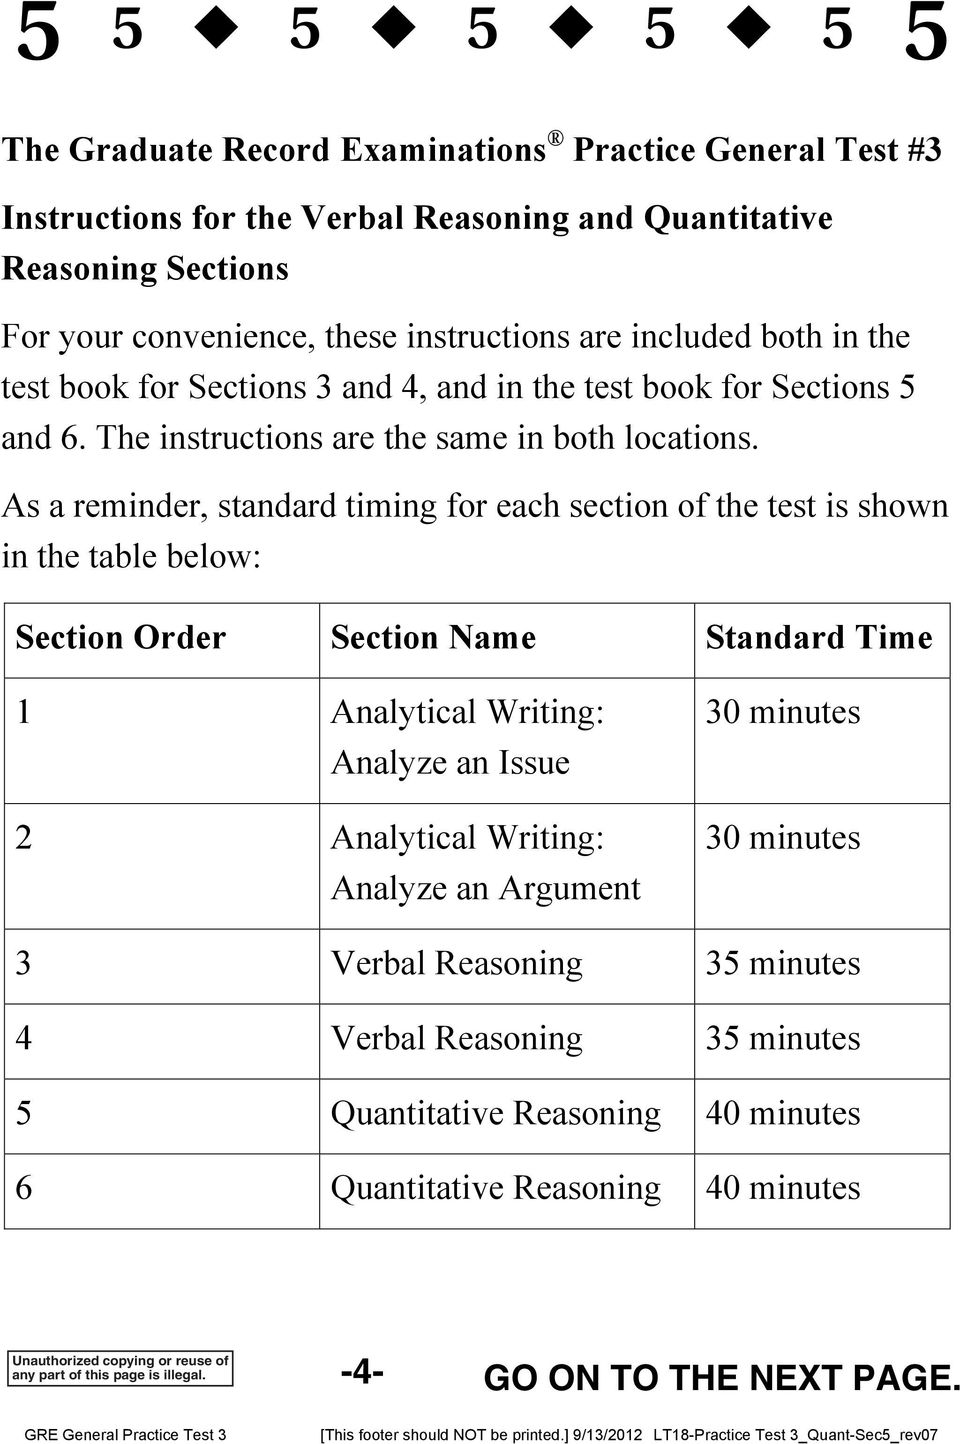 Practice General Test # 3  Large Print (18 point) Edition